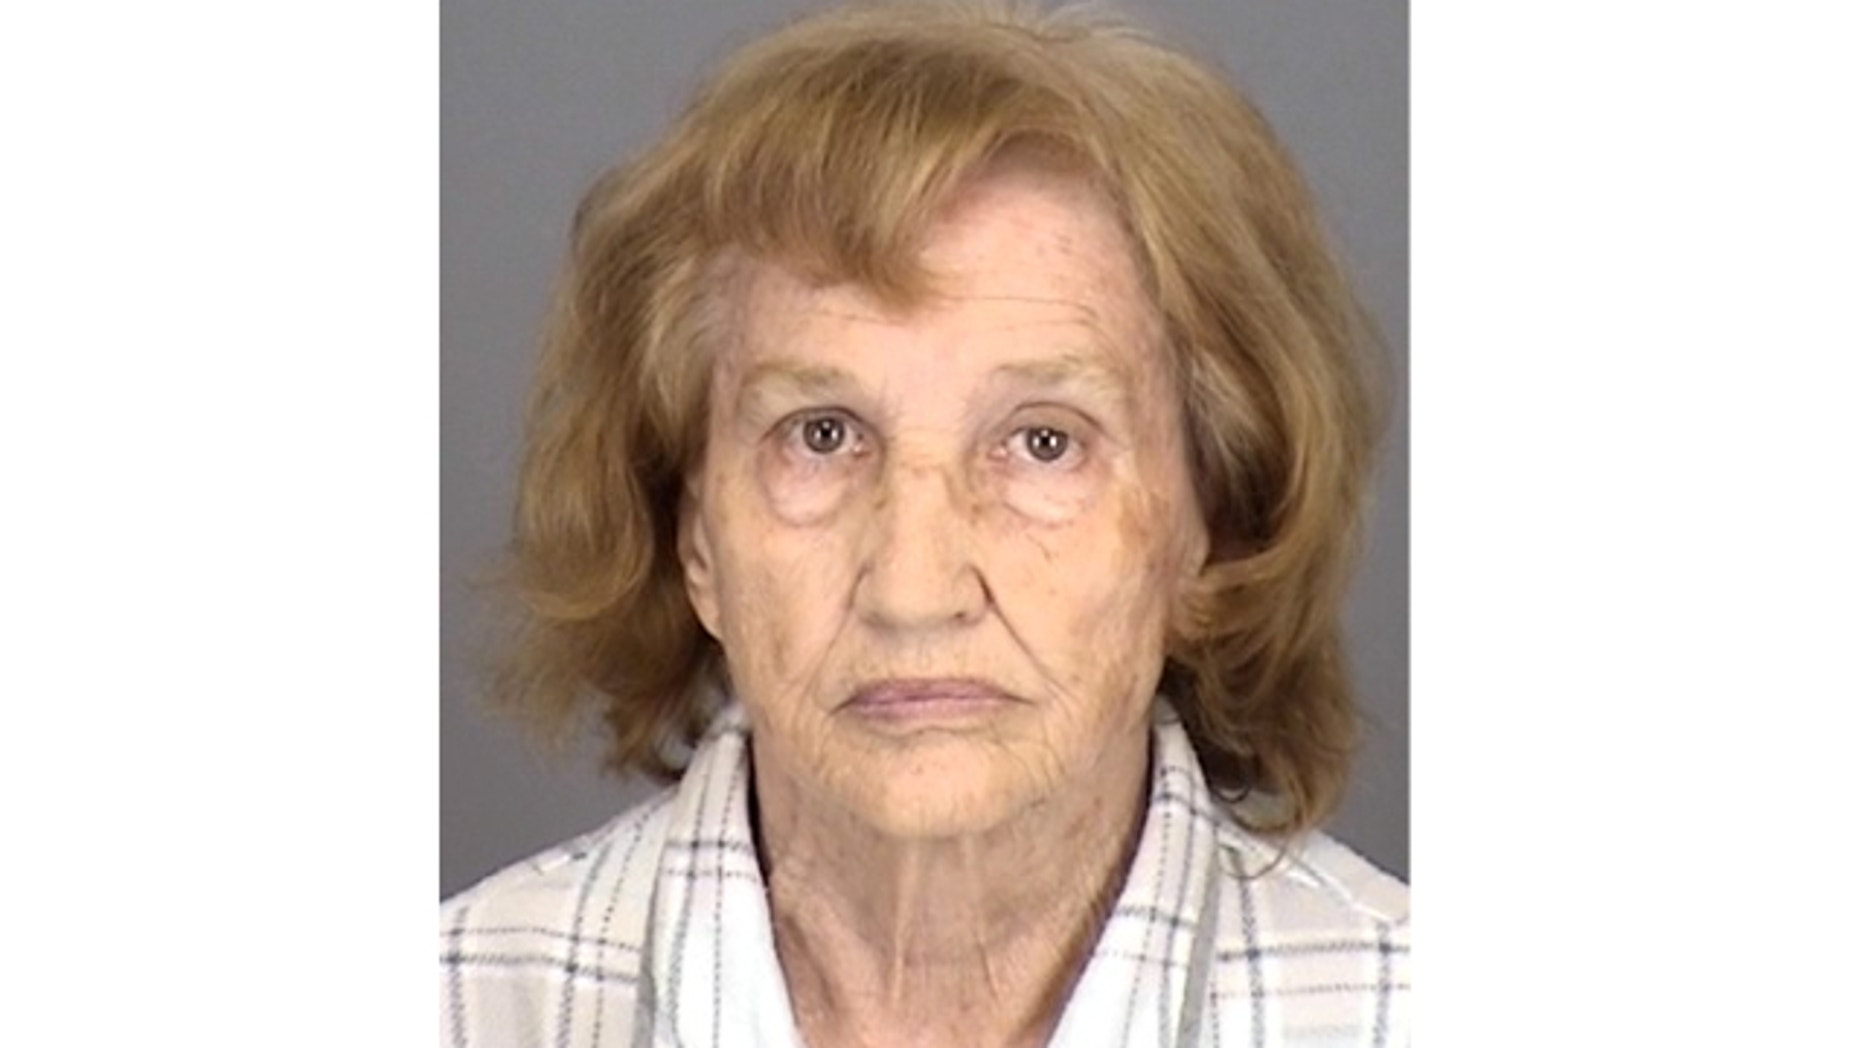 UNDATED: Mary Musselman, of Sebring, Fla., is accused of violating her probation by feeding wildlife and resisting an officer with violence, authorities say.